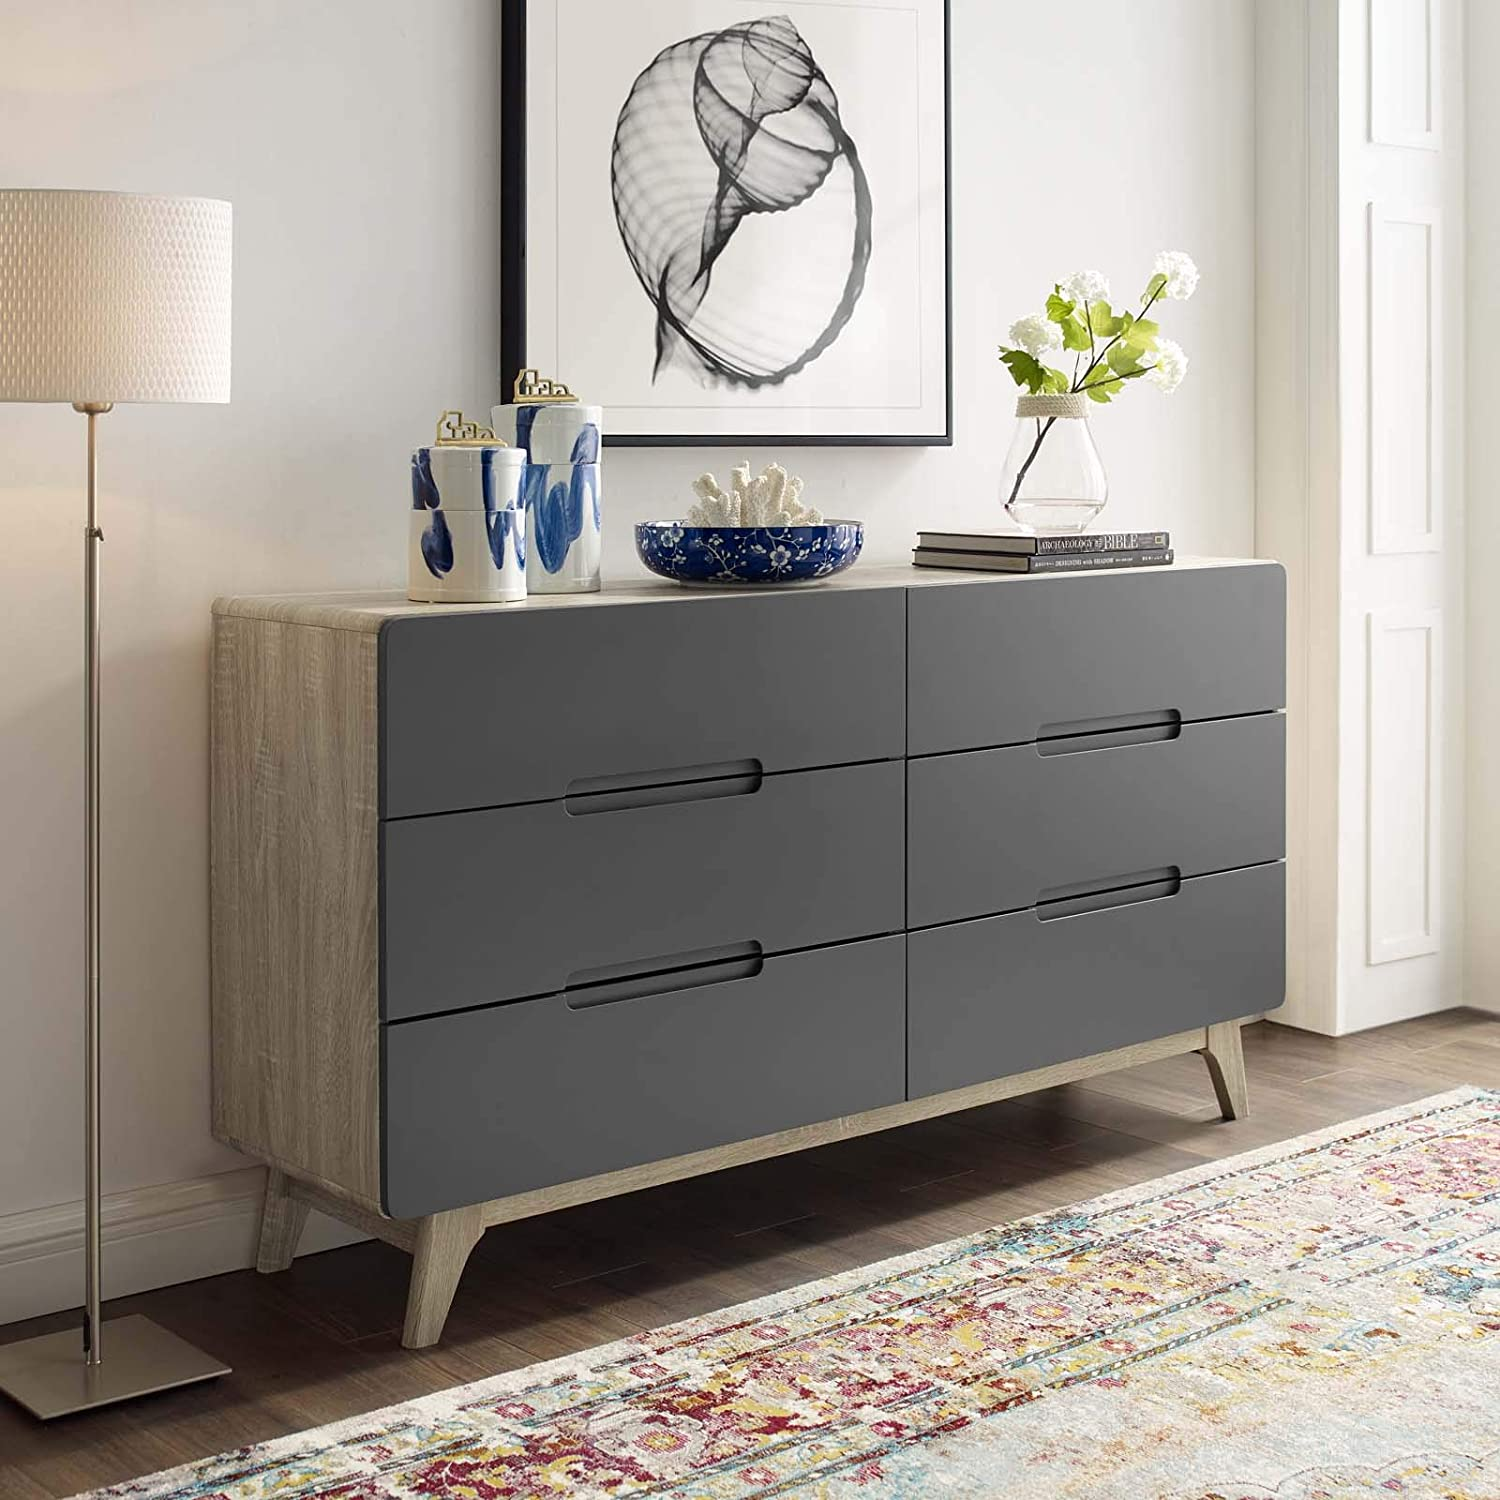 Amazon Com Modway Origin Contemporary Mid Century Modern 6 Drawer Bedroom Dresser In Natural Gray Furniture Decor